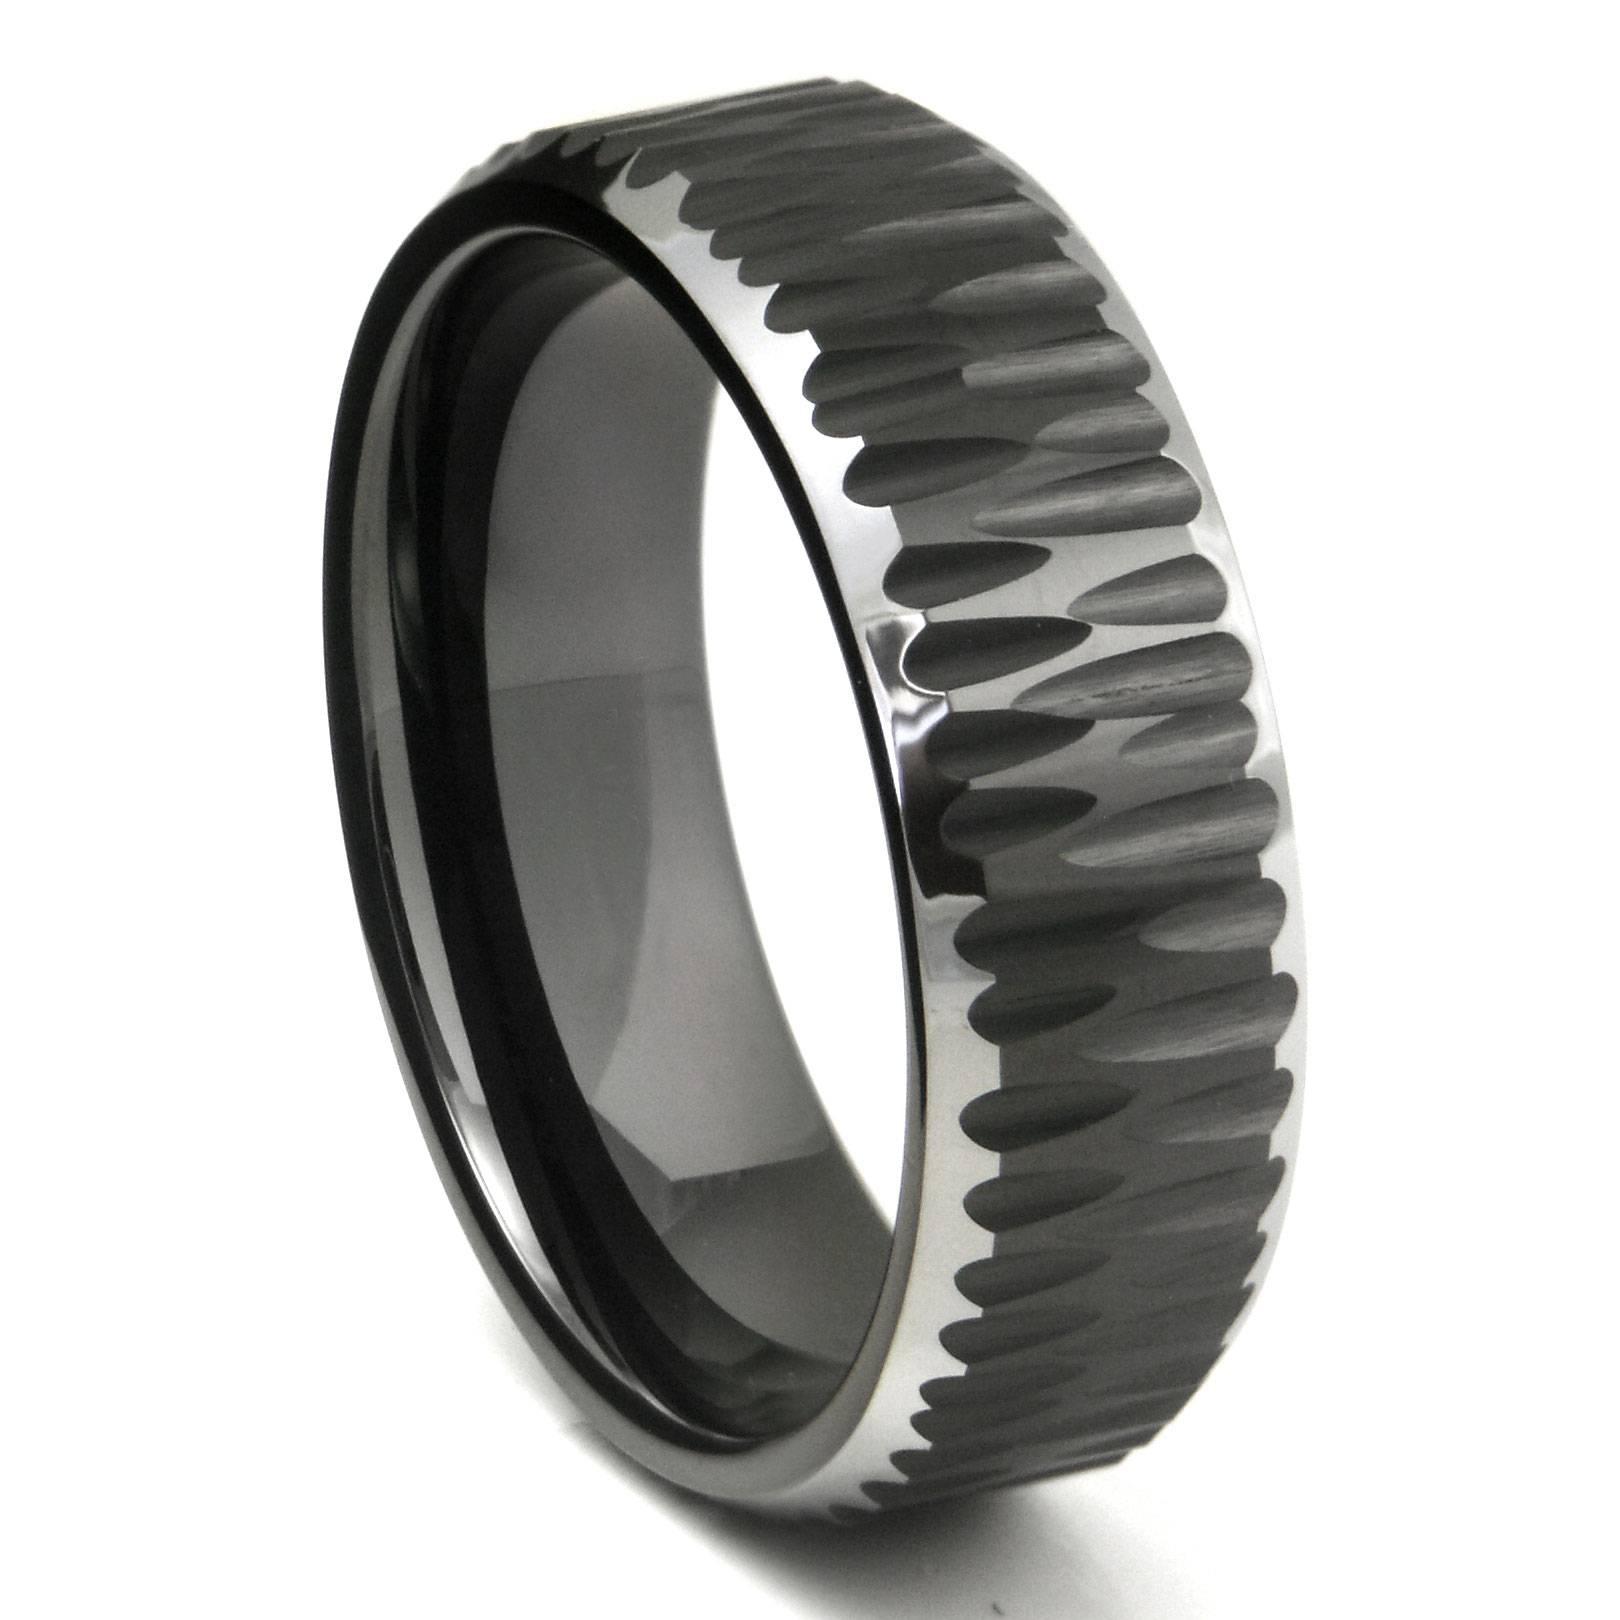 Black Tungsten Carbide Hammer Finish Beveled Wedding Band Ring Pertaining To Hammered Tungsten Men's Wedding Bands (View 2 of 15)